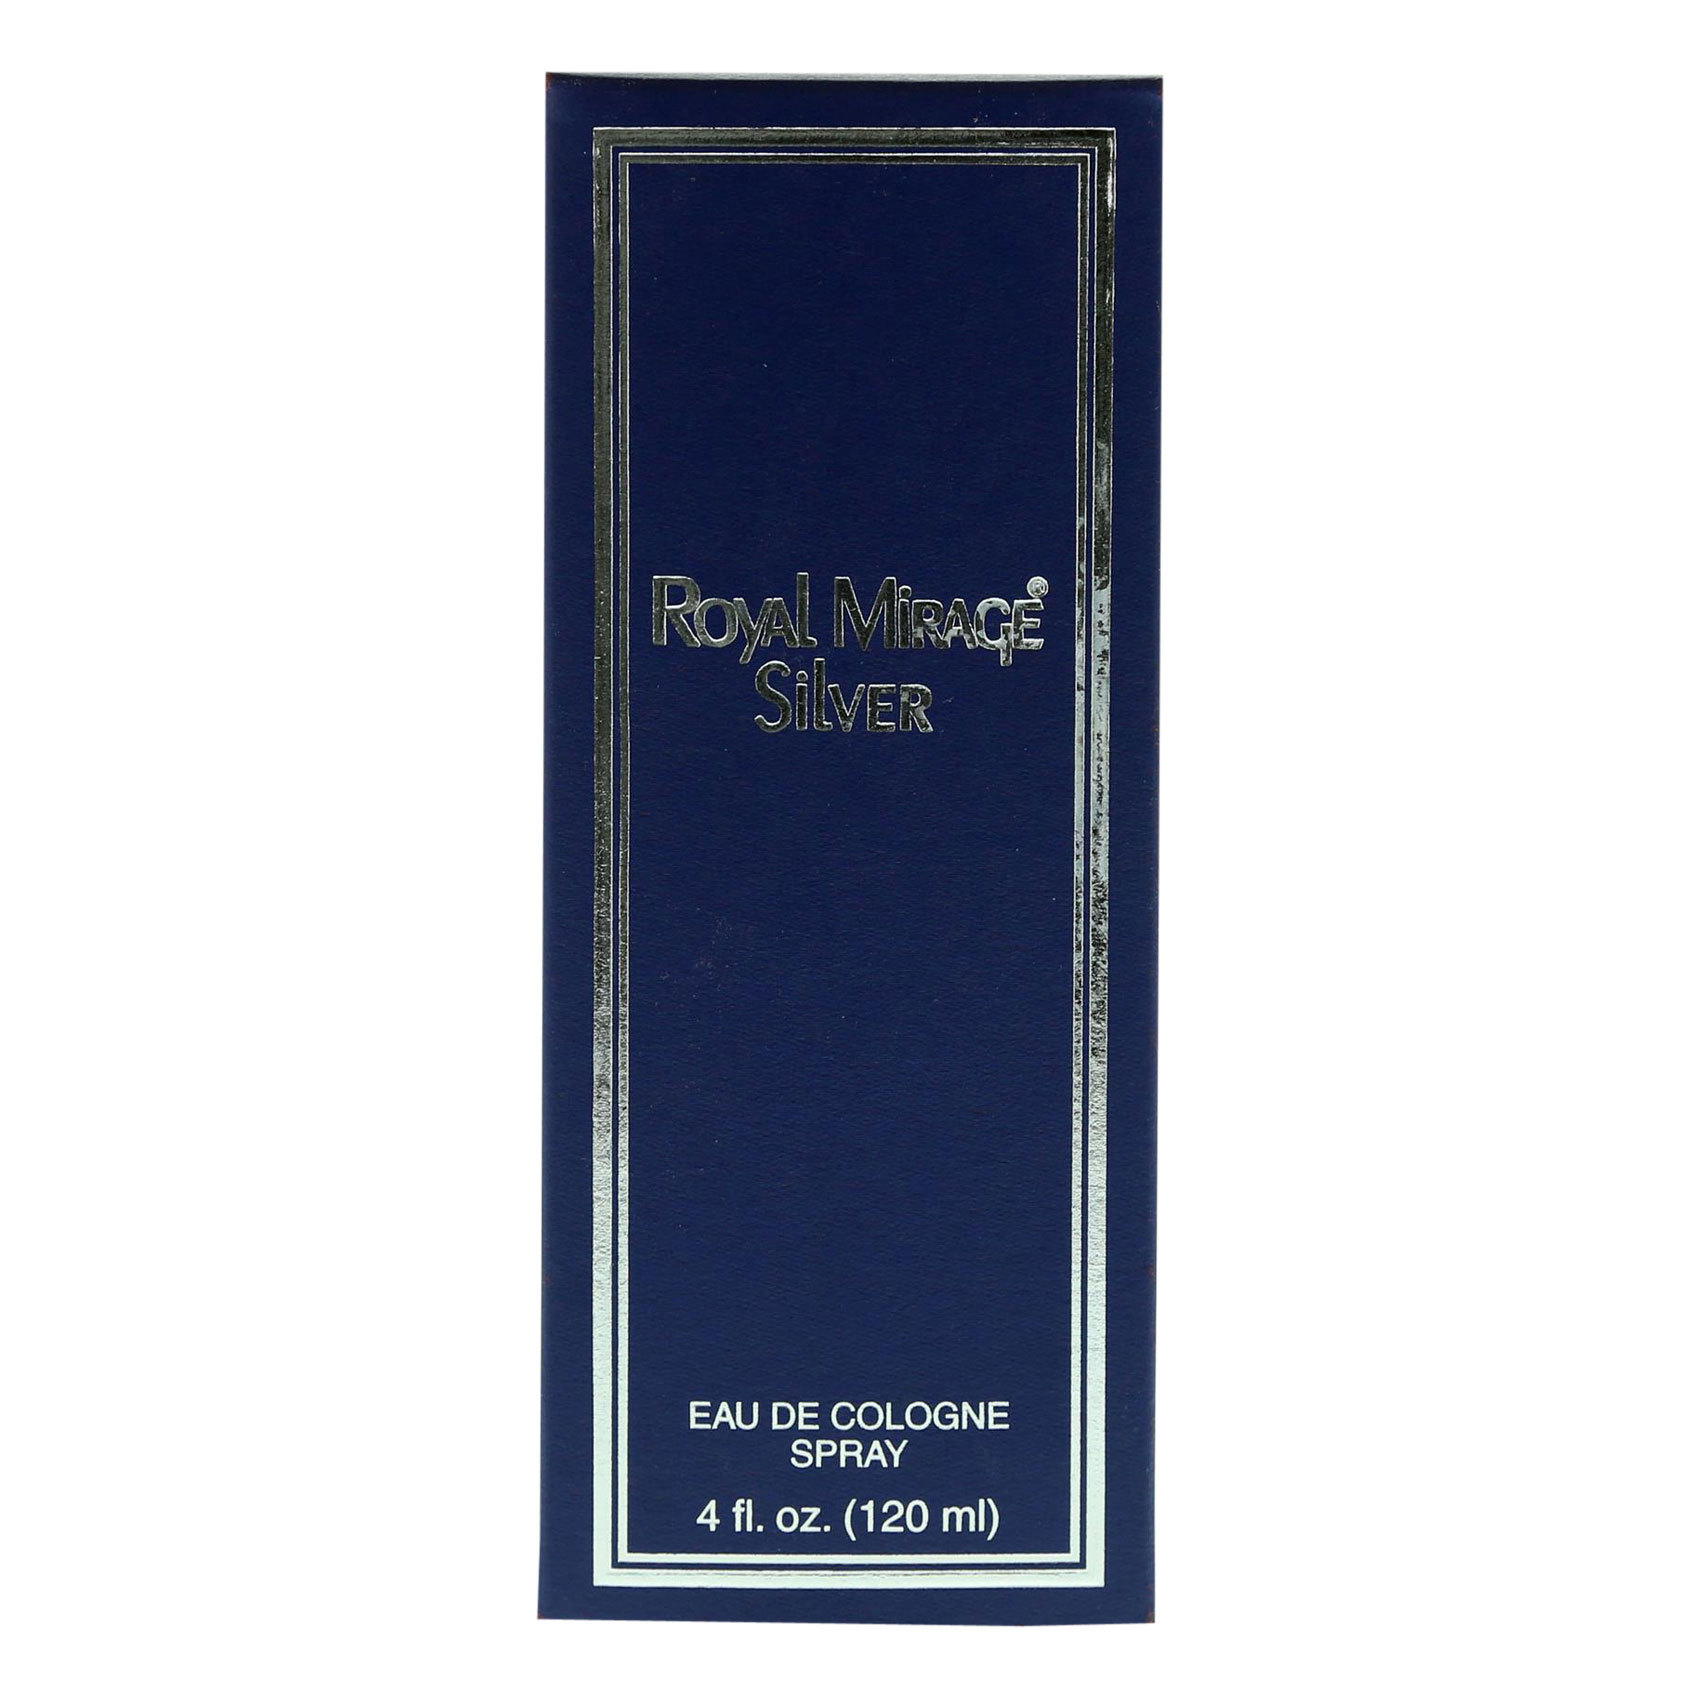 ROYAL MIRAGE PERFUME SILVER 120ML